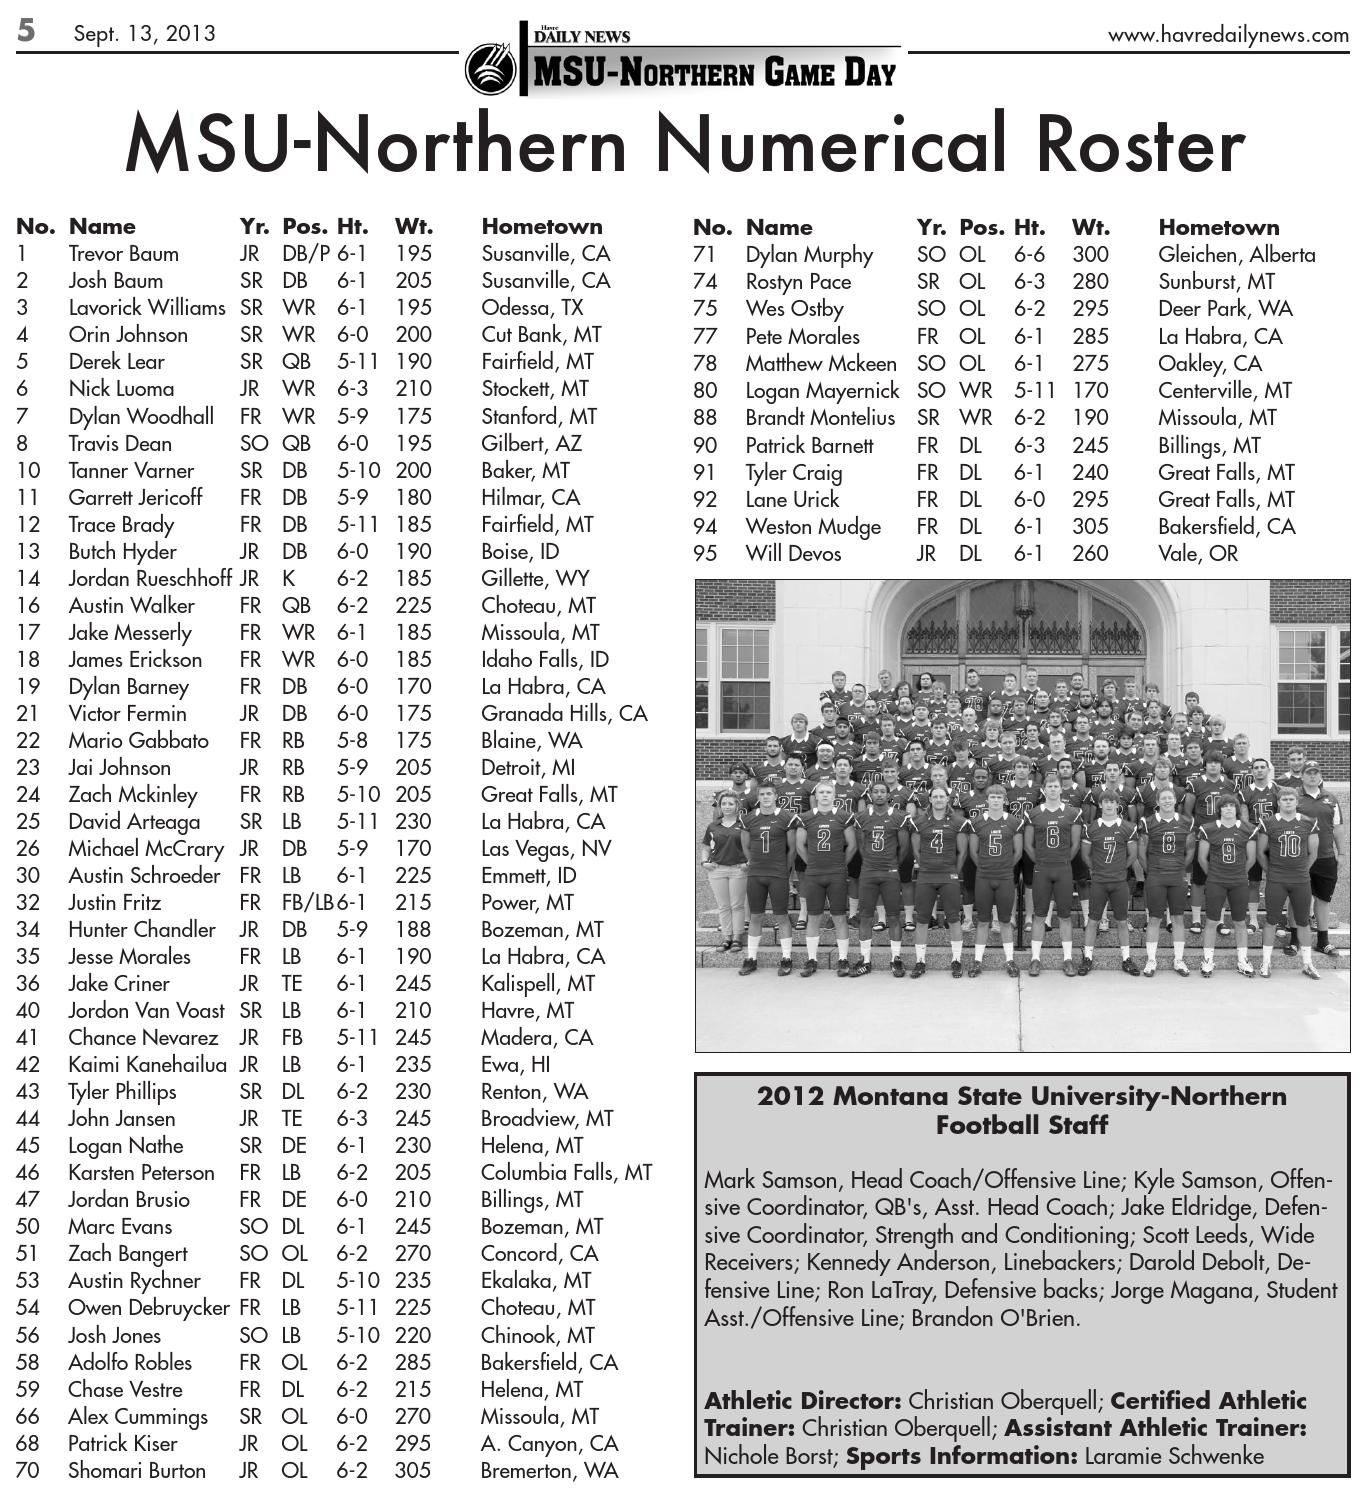 MSU-Northern Game Day ~ 9-14-2013 by Havre Daily News - issuu